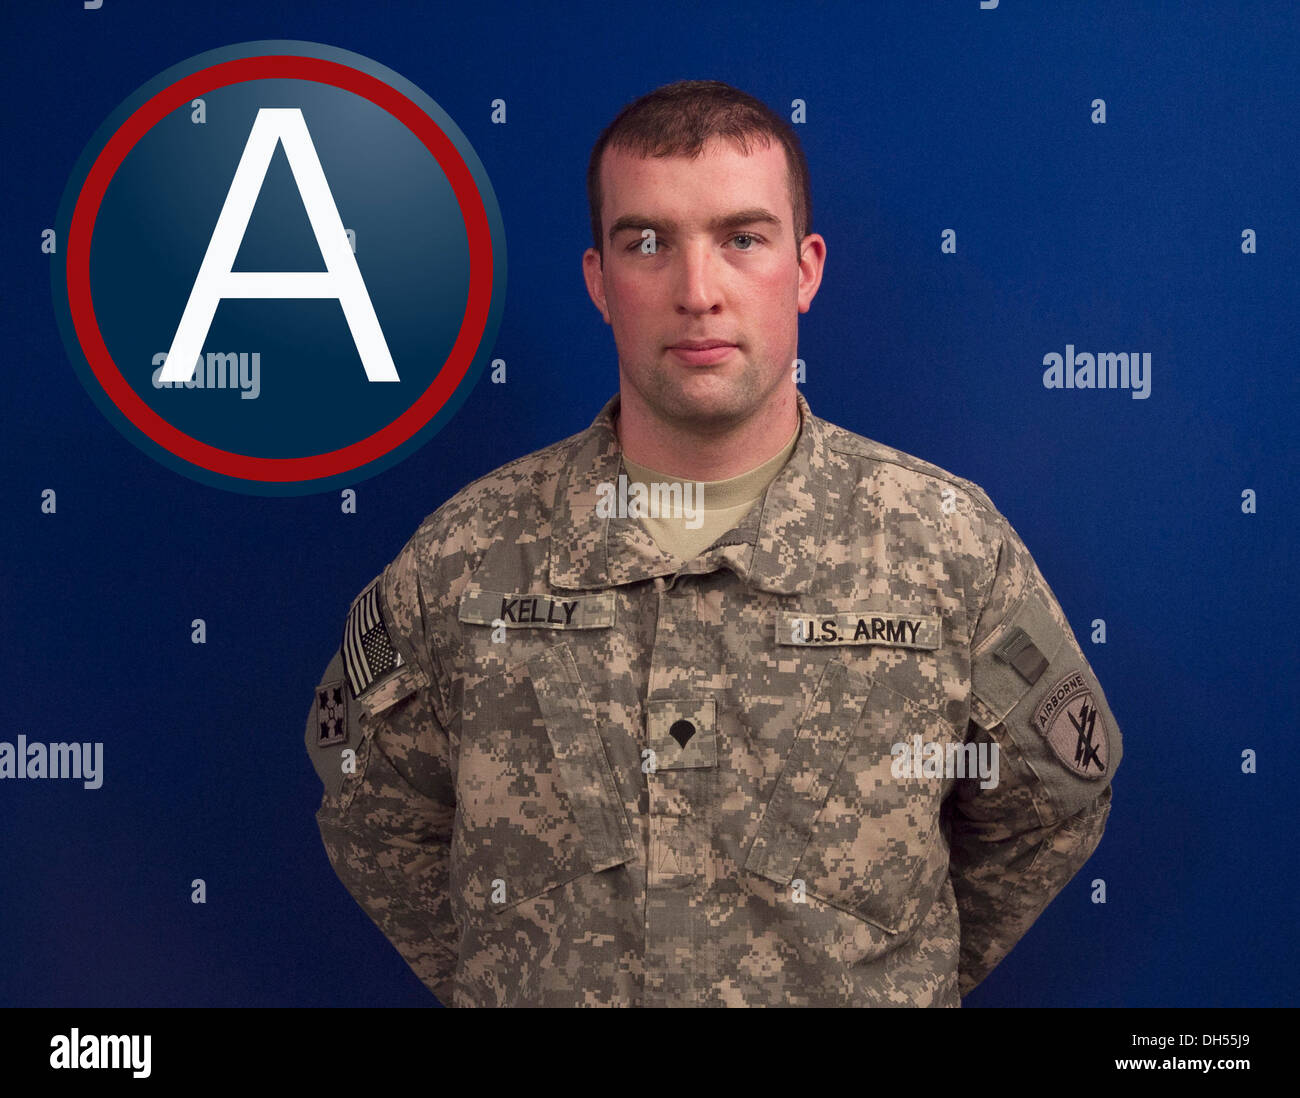 Spc. Liam P. Kelly, civil affairs specialist with the U.S. Army Central Strategy and Effects is this week's Third Army Soldier of the Week. - Stock Image